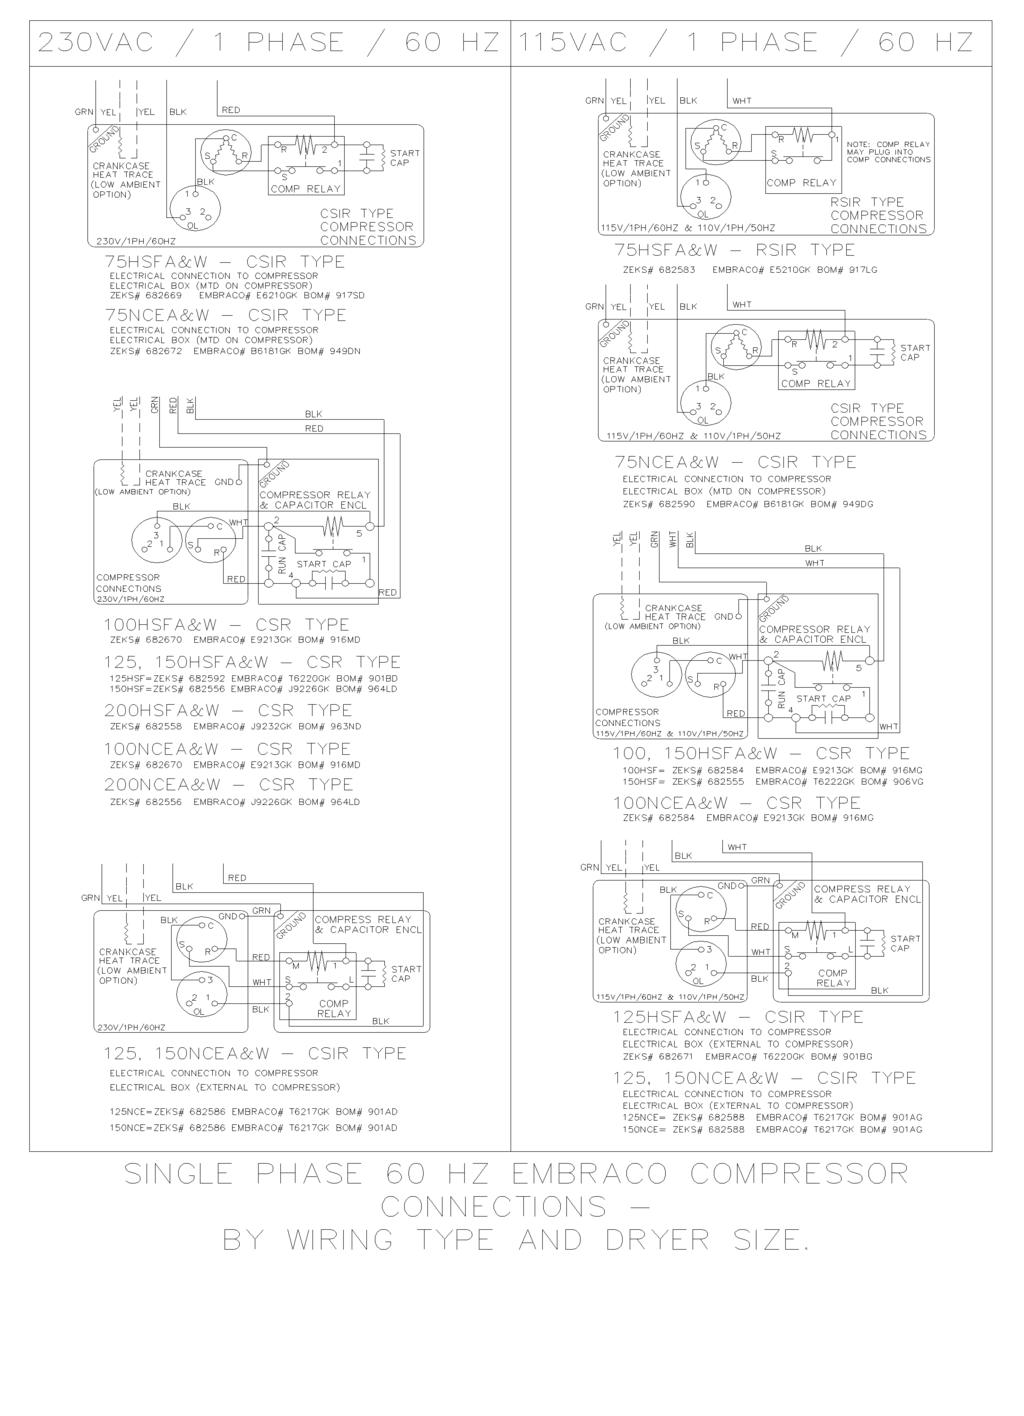 hight resolution of wiring diagram single phase 60 hz embraco compressor